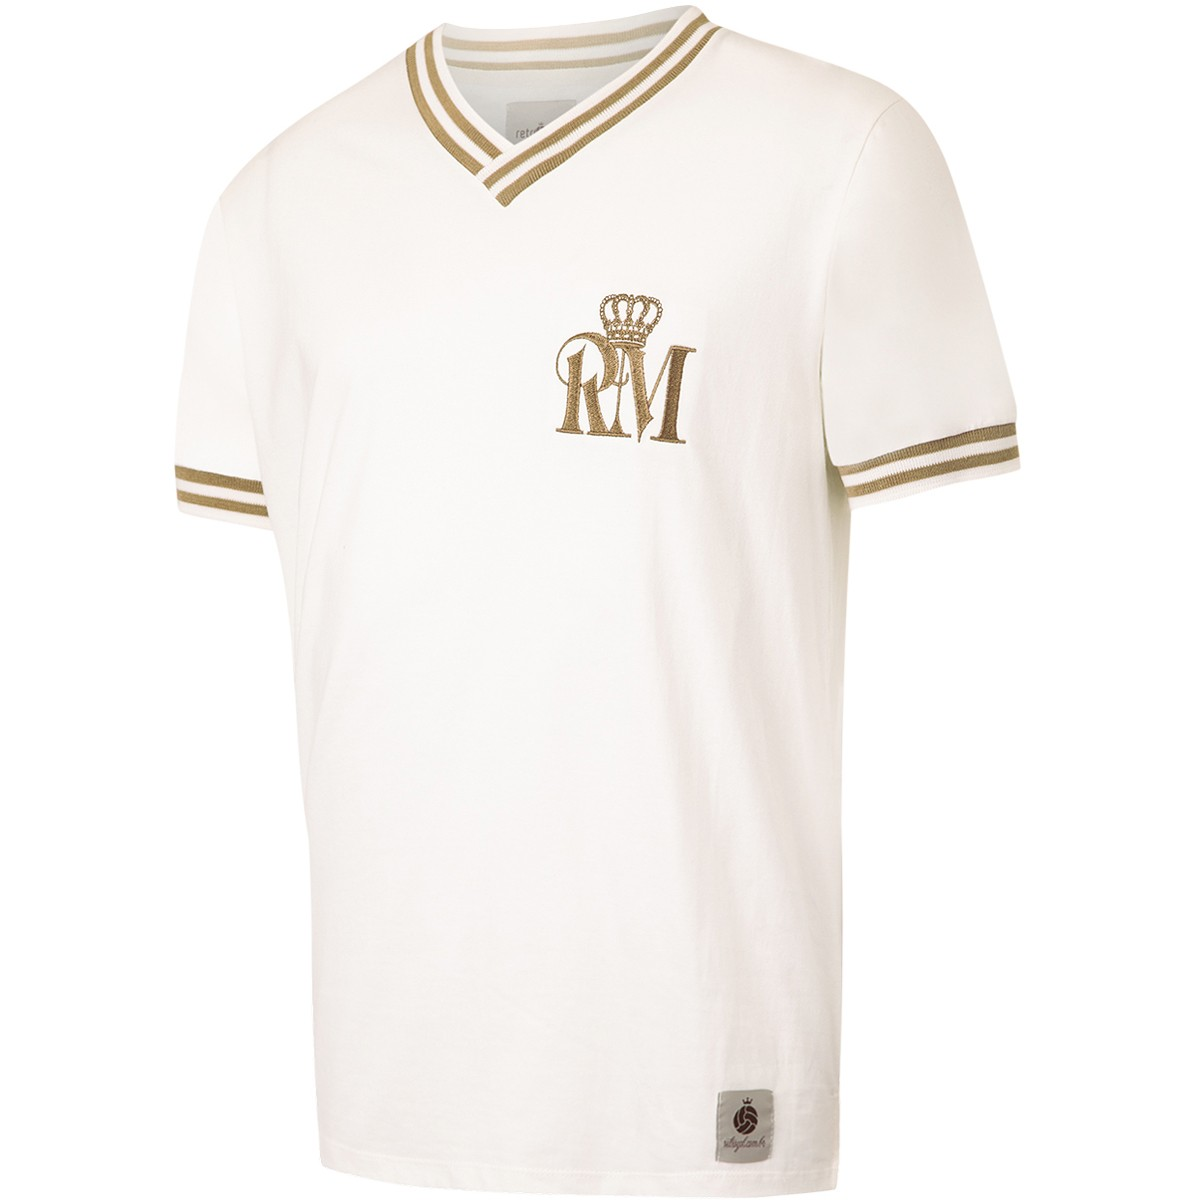 Camisa Real Madrid Retrô nº 10 Masculina